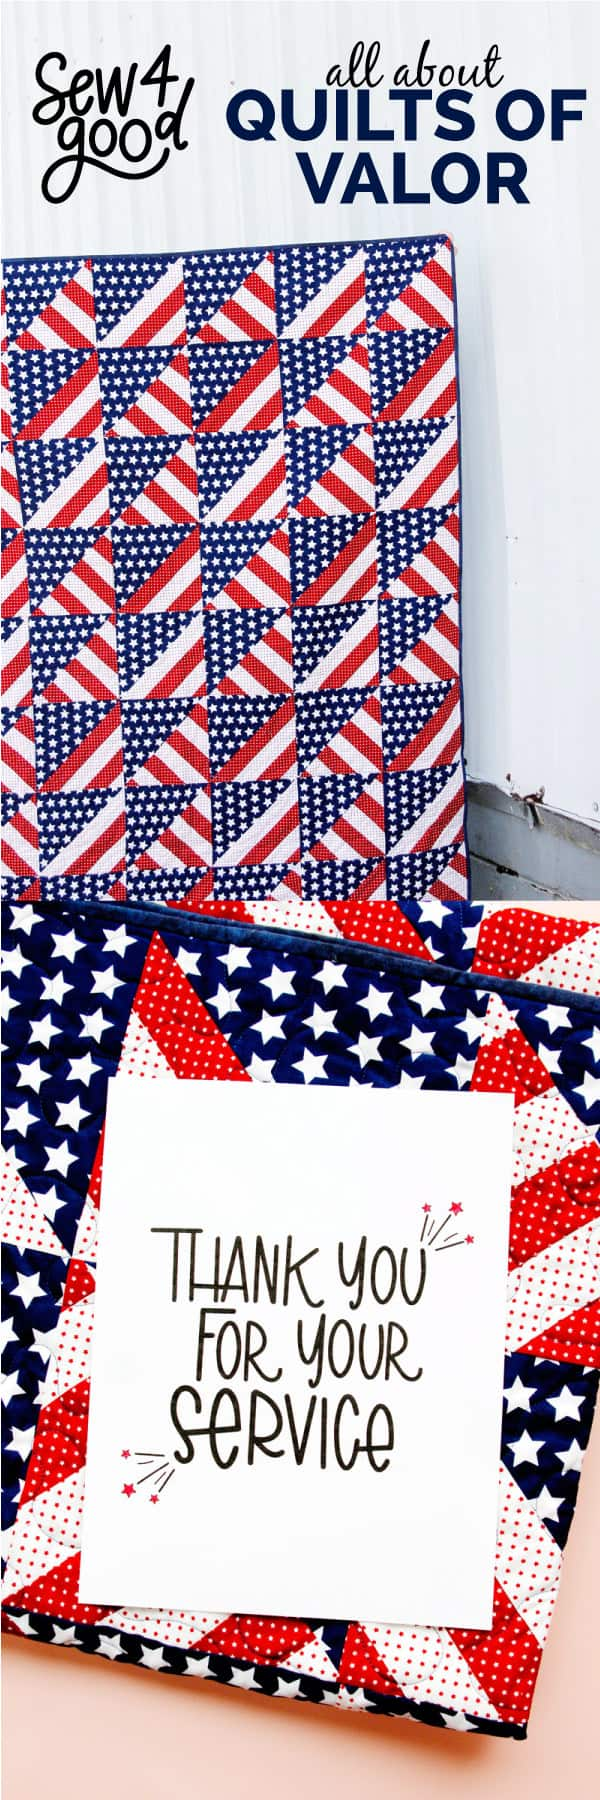 All about Quilts of Valor - How to get involved, quilt requirements, etc